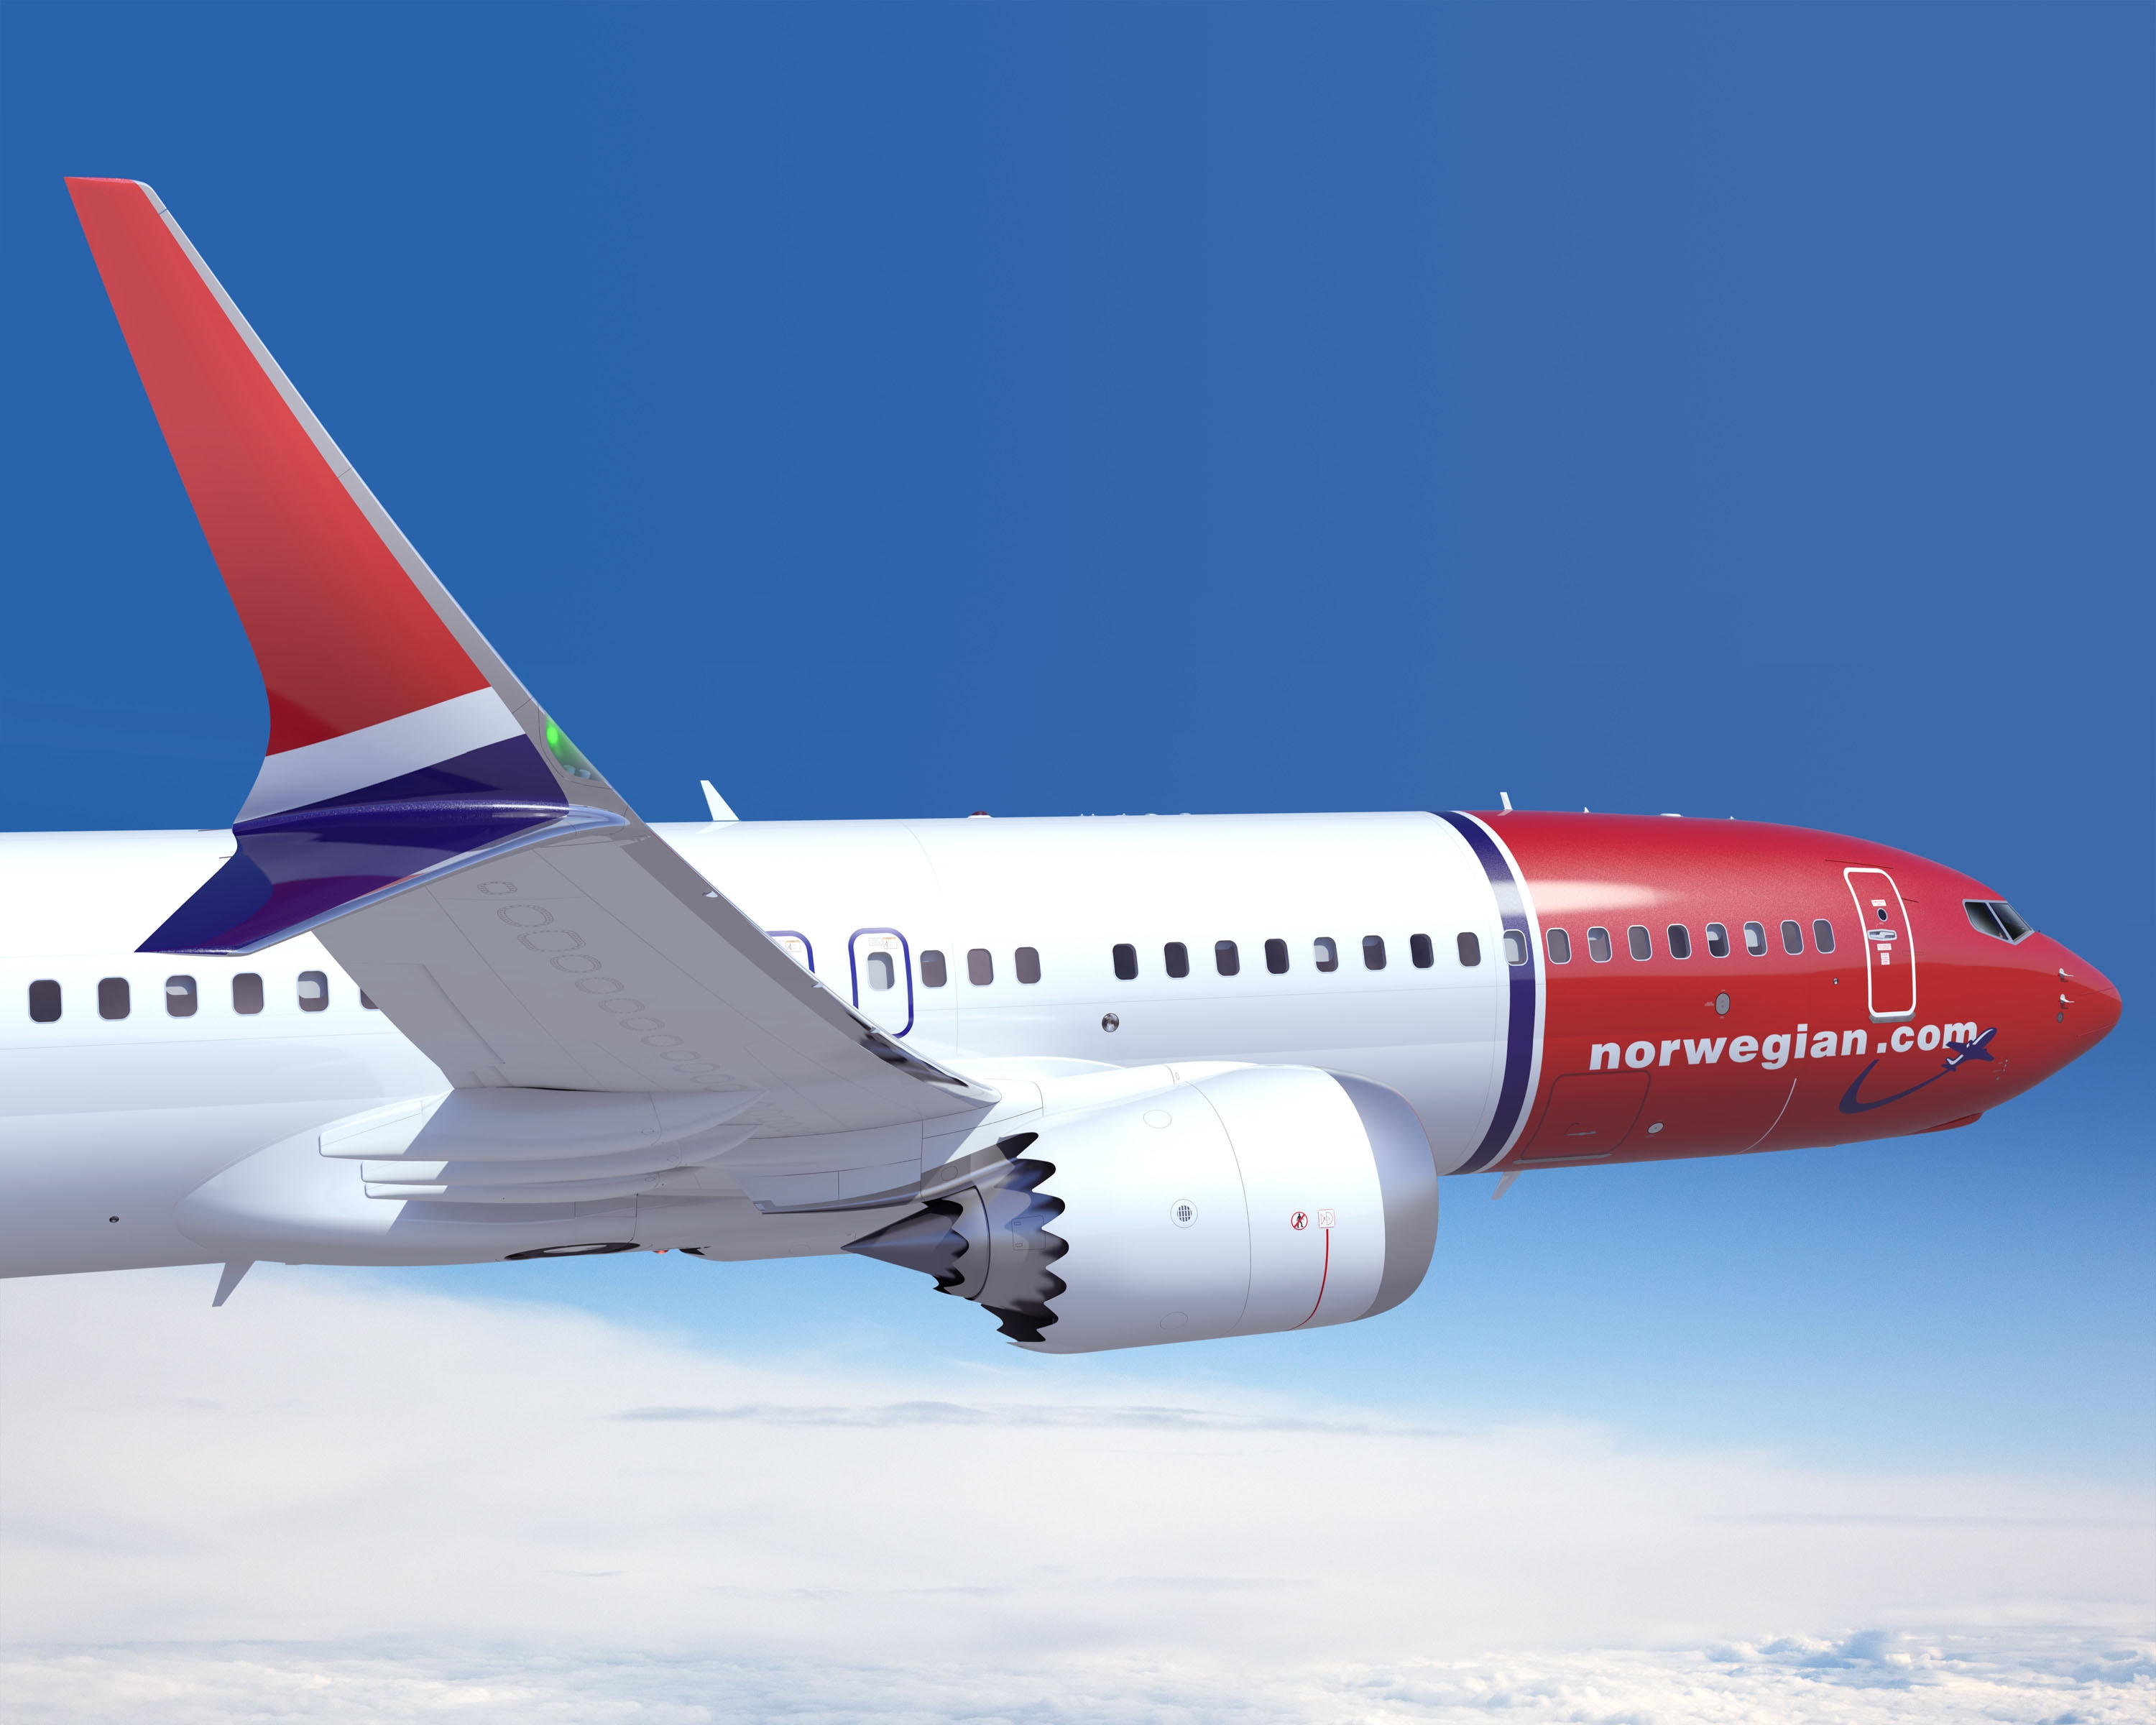 Norwegian's 737 MAX 8 design artwork